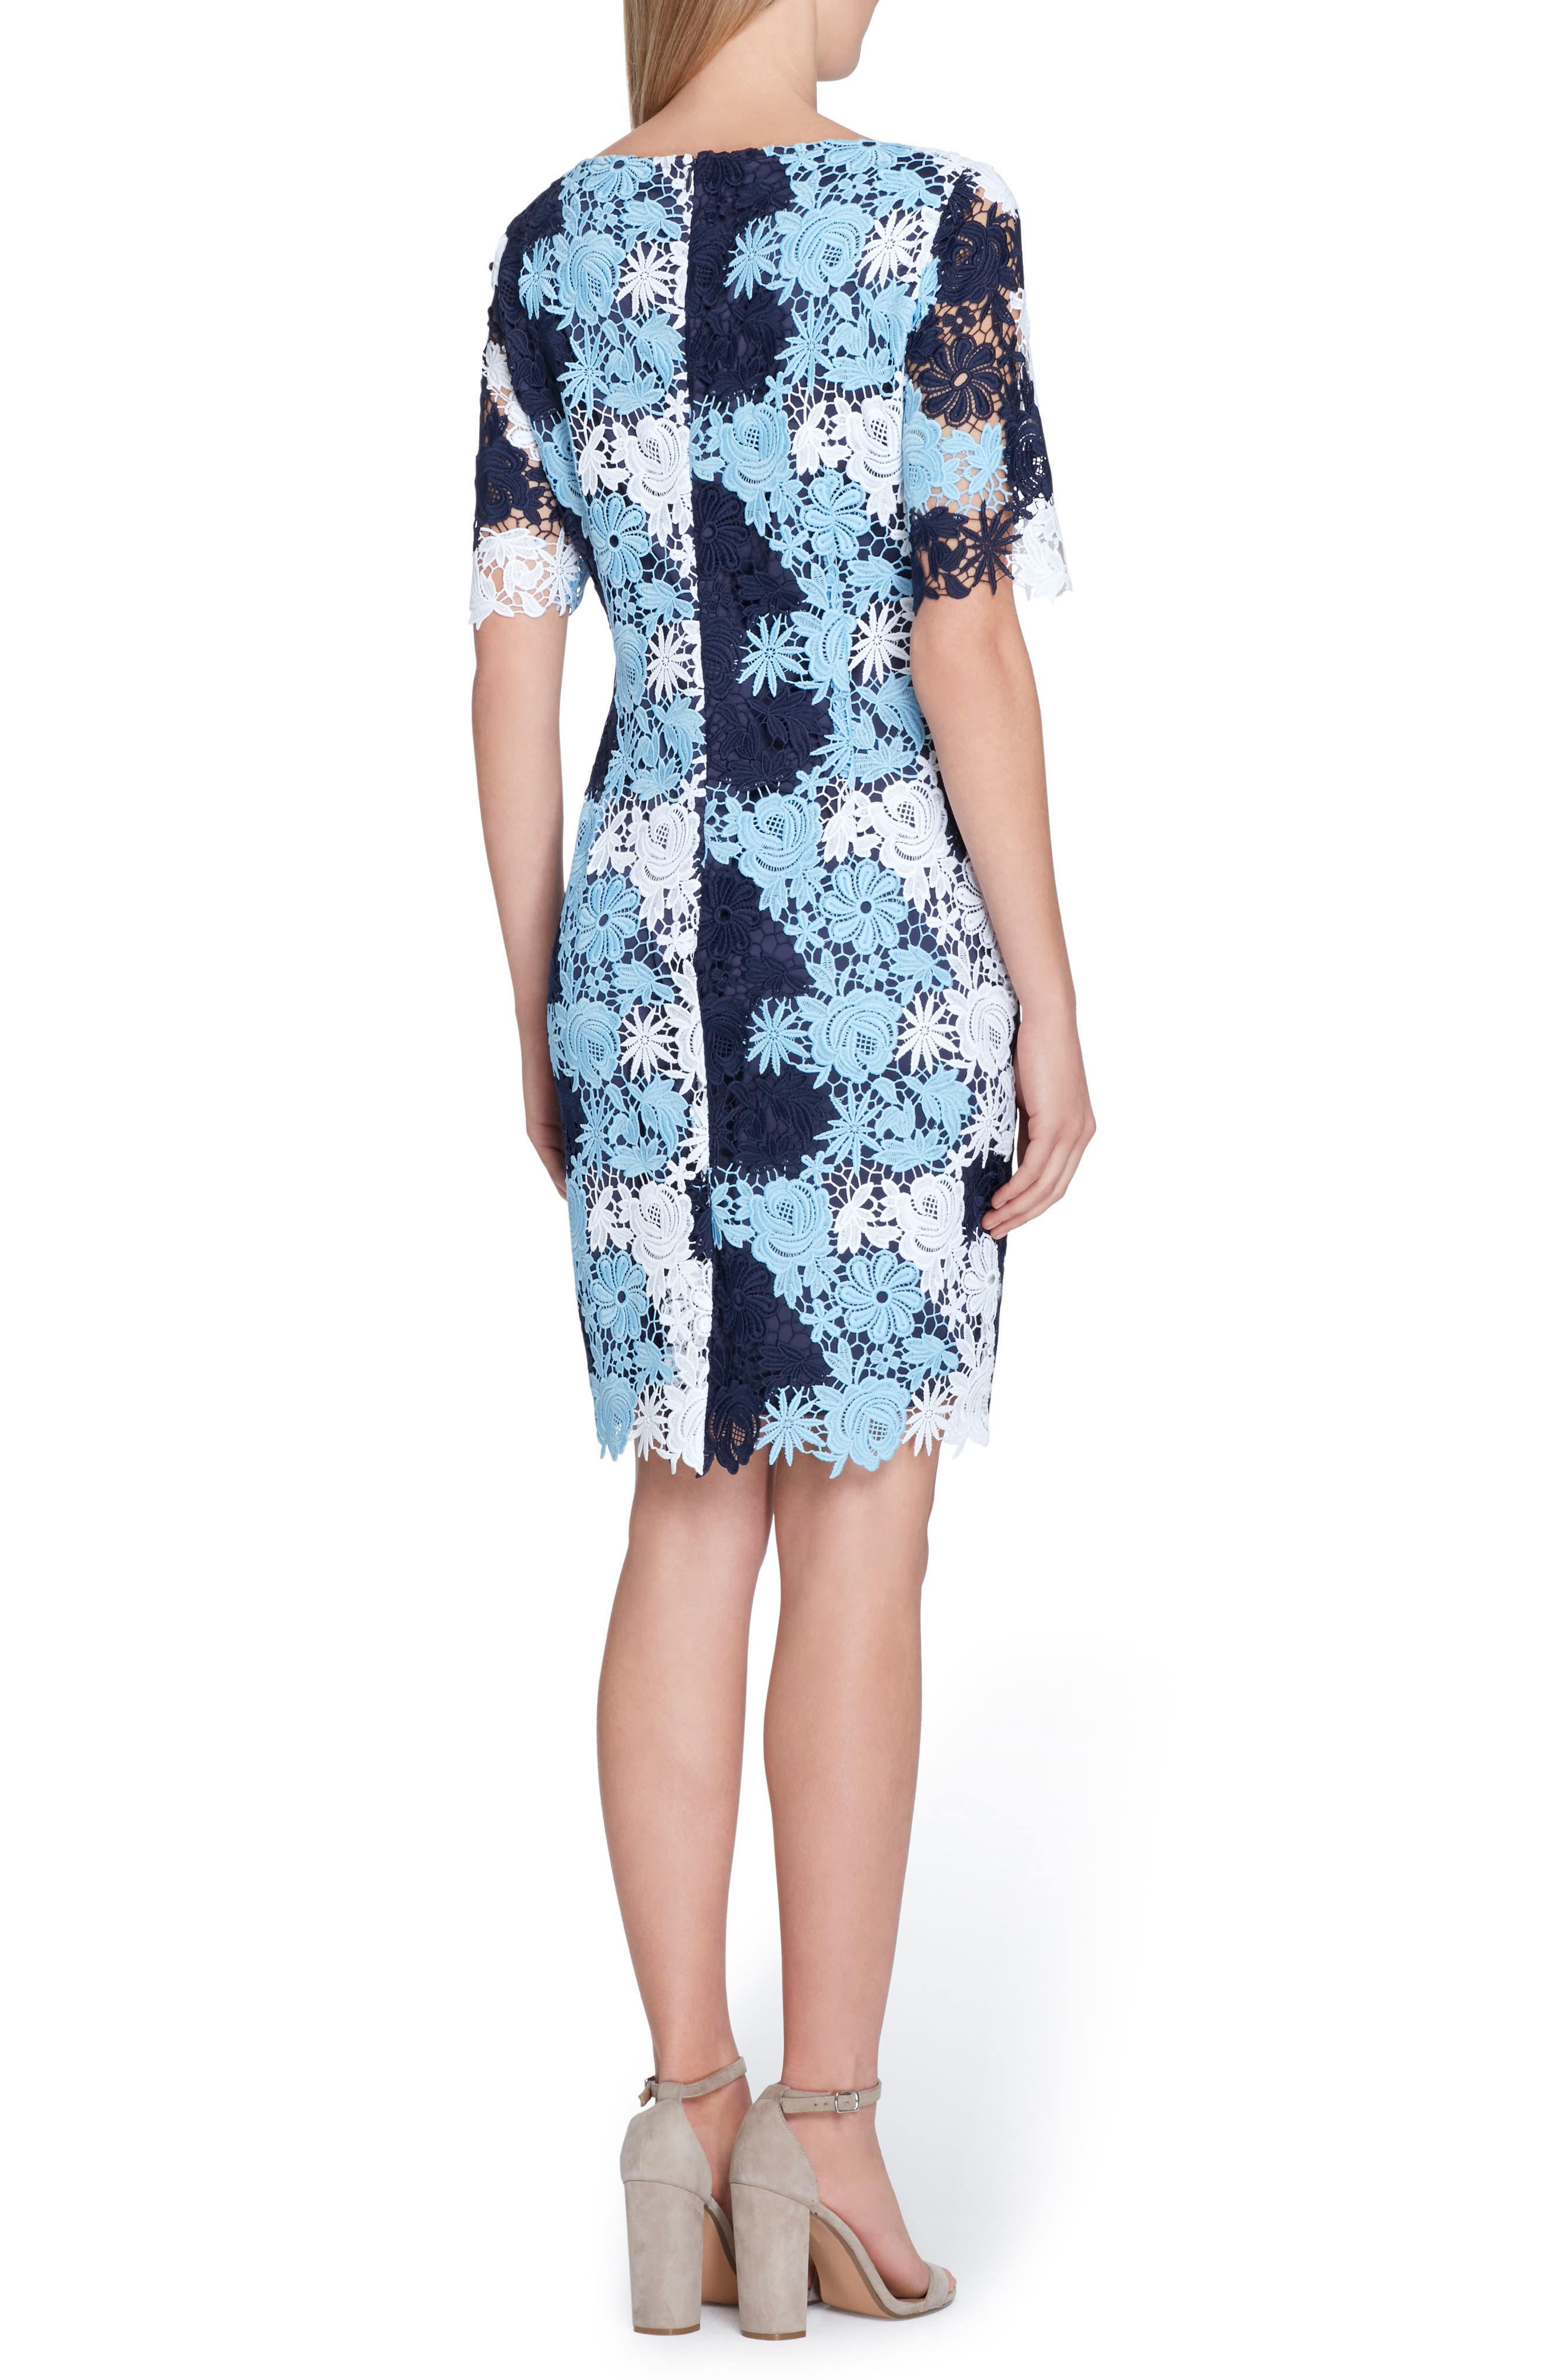 Multicolor Lace Sheath Dress,                             Alternate thumbnail 2, color,                             Navy/ Sky/ Pale Blue